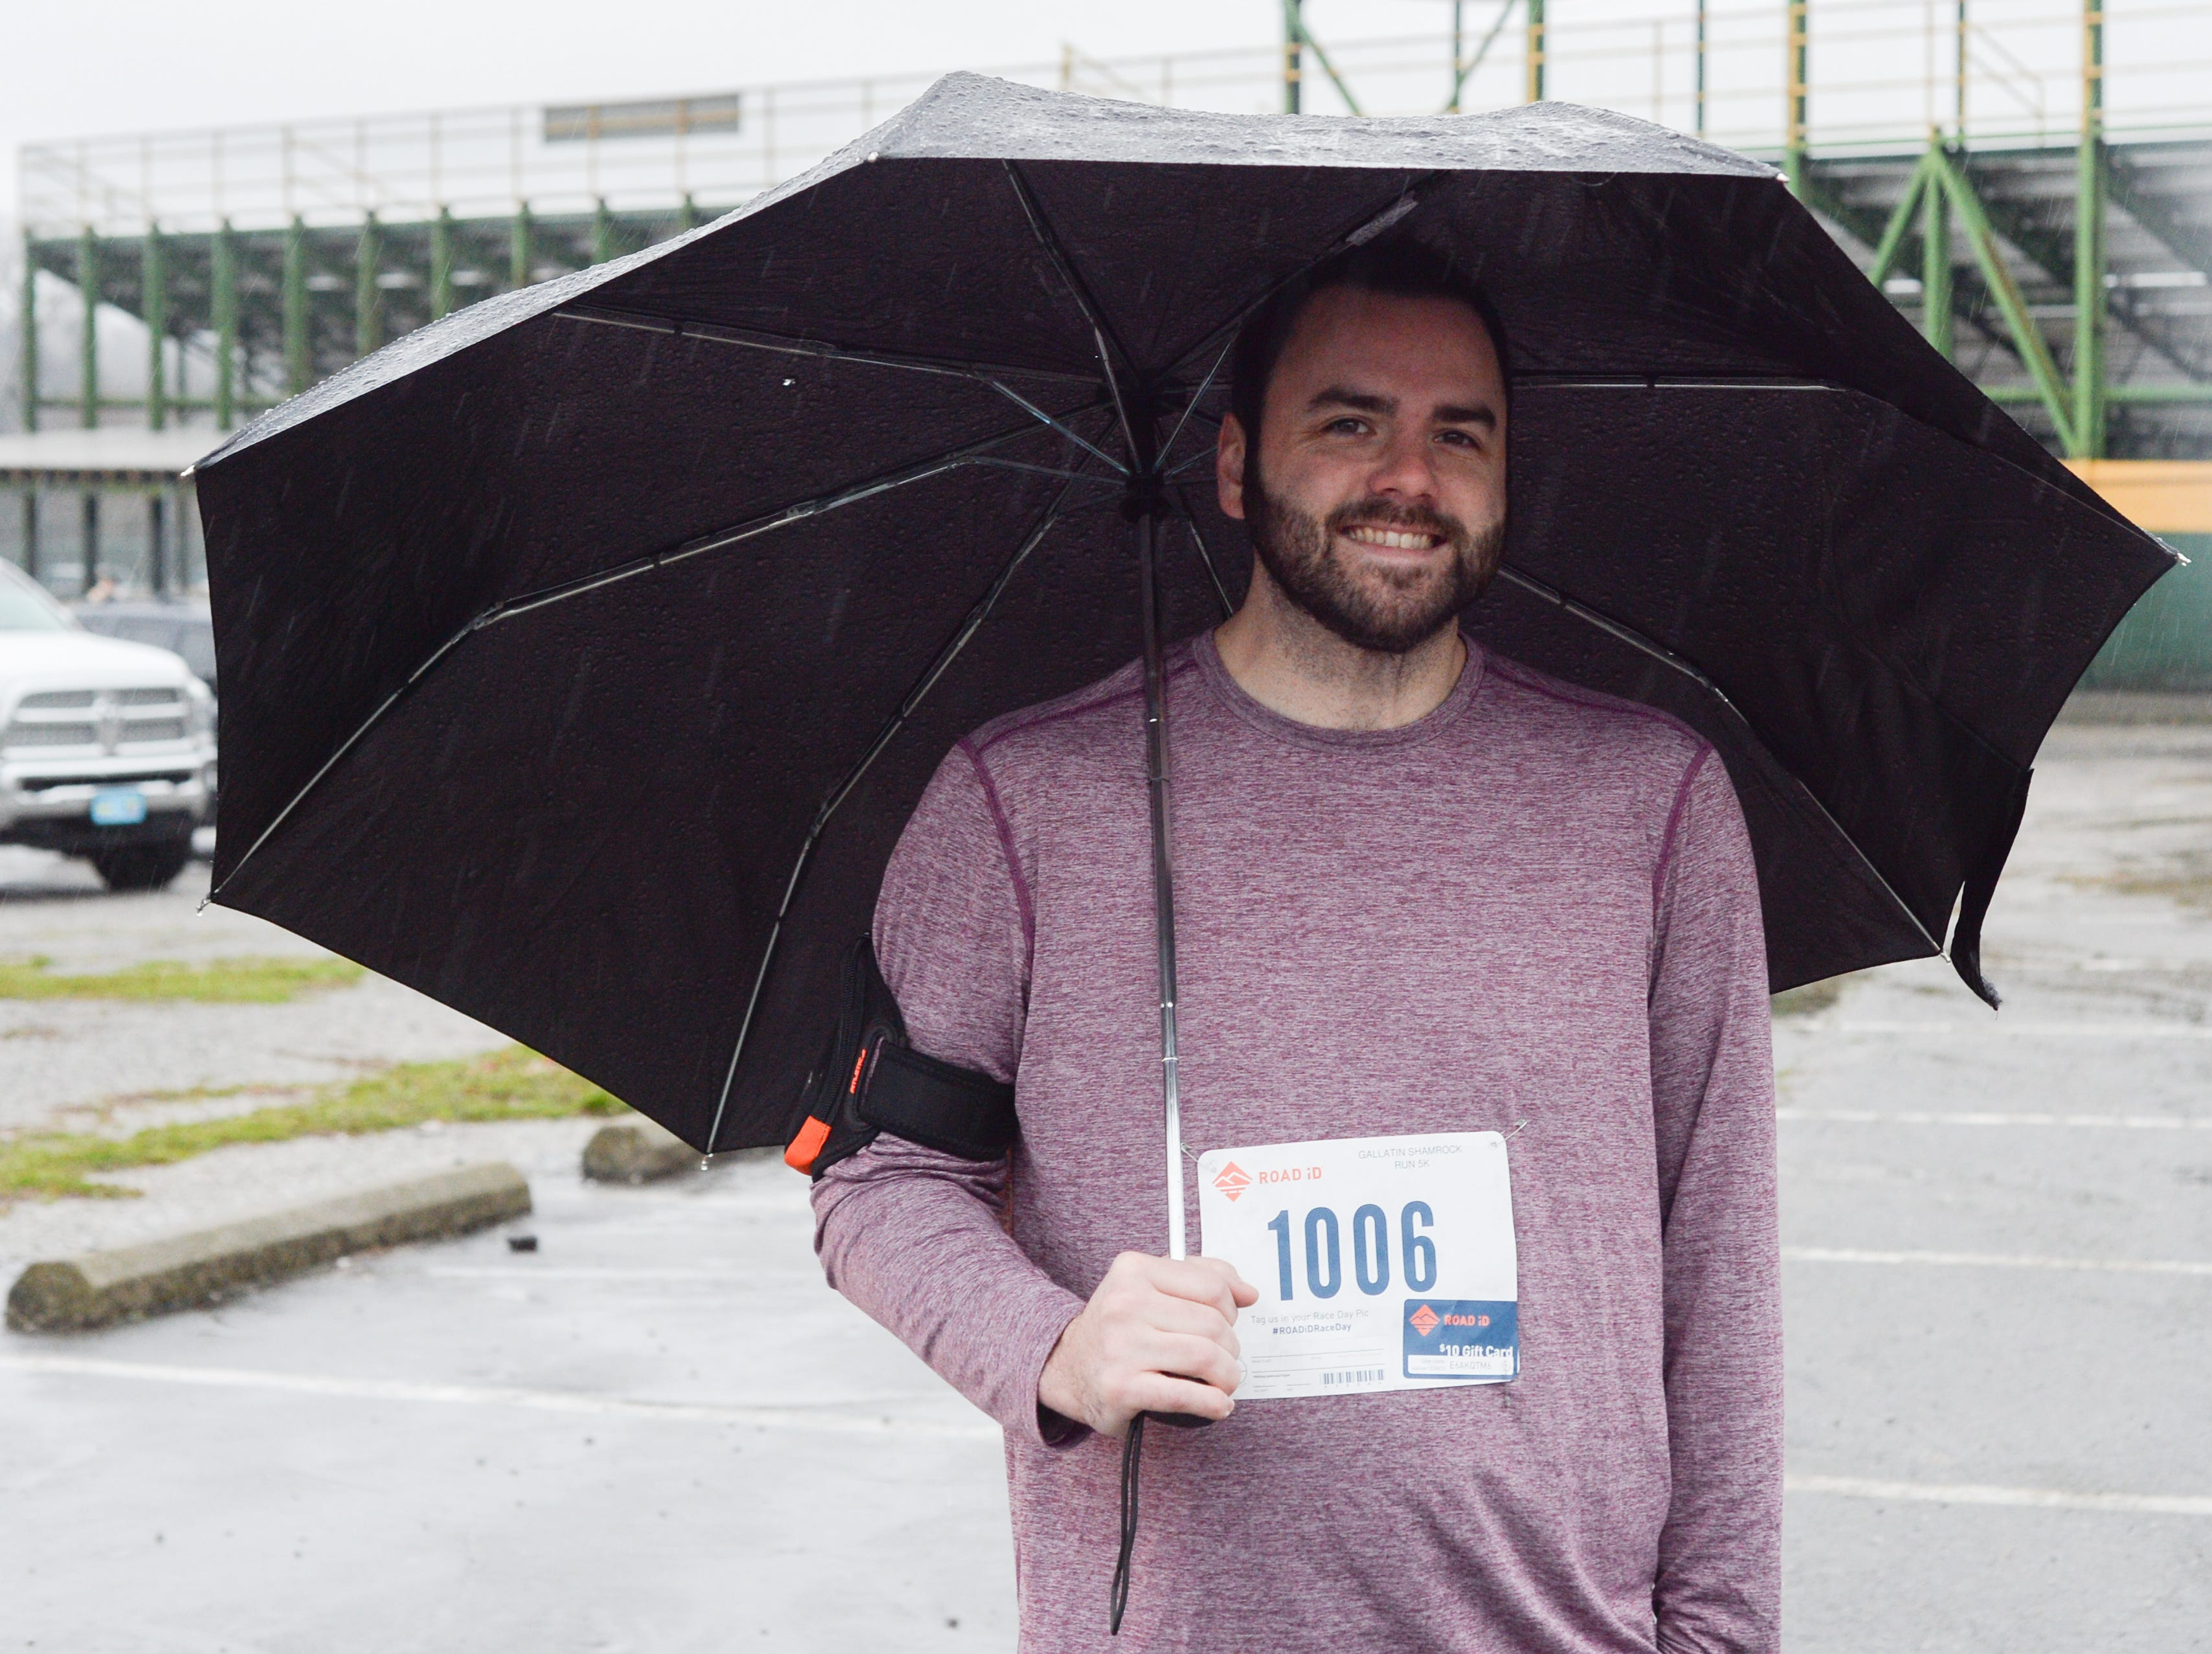 Josh Waugh tries to stay dry before the start of the Gallatin Shamrock Run on Saturday, March 9.